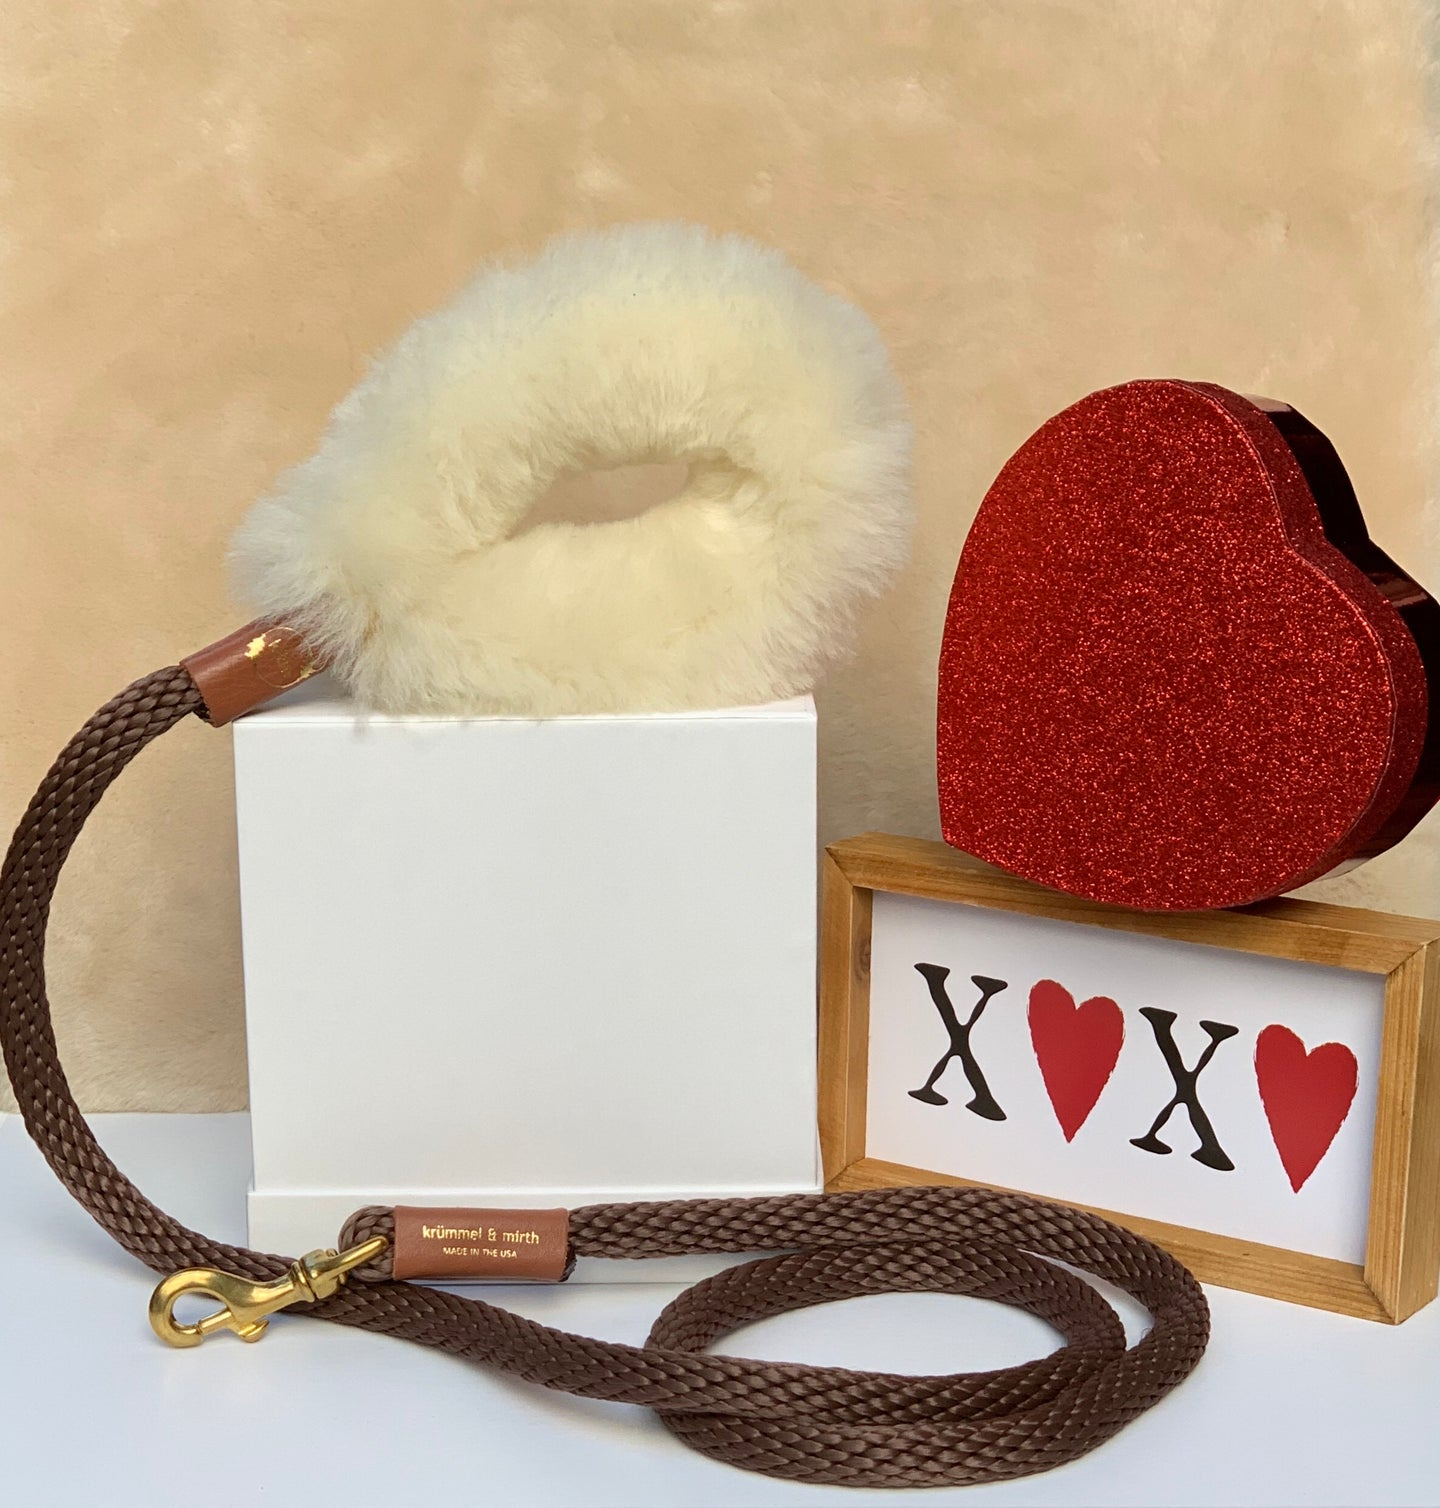 Genuine Shearling, Leather, & Nylon Rope Leash For Dogs: The St. Moritz